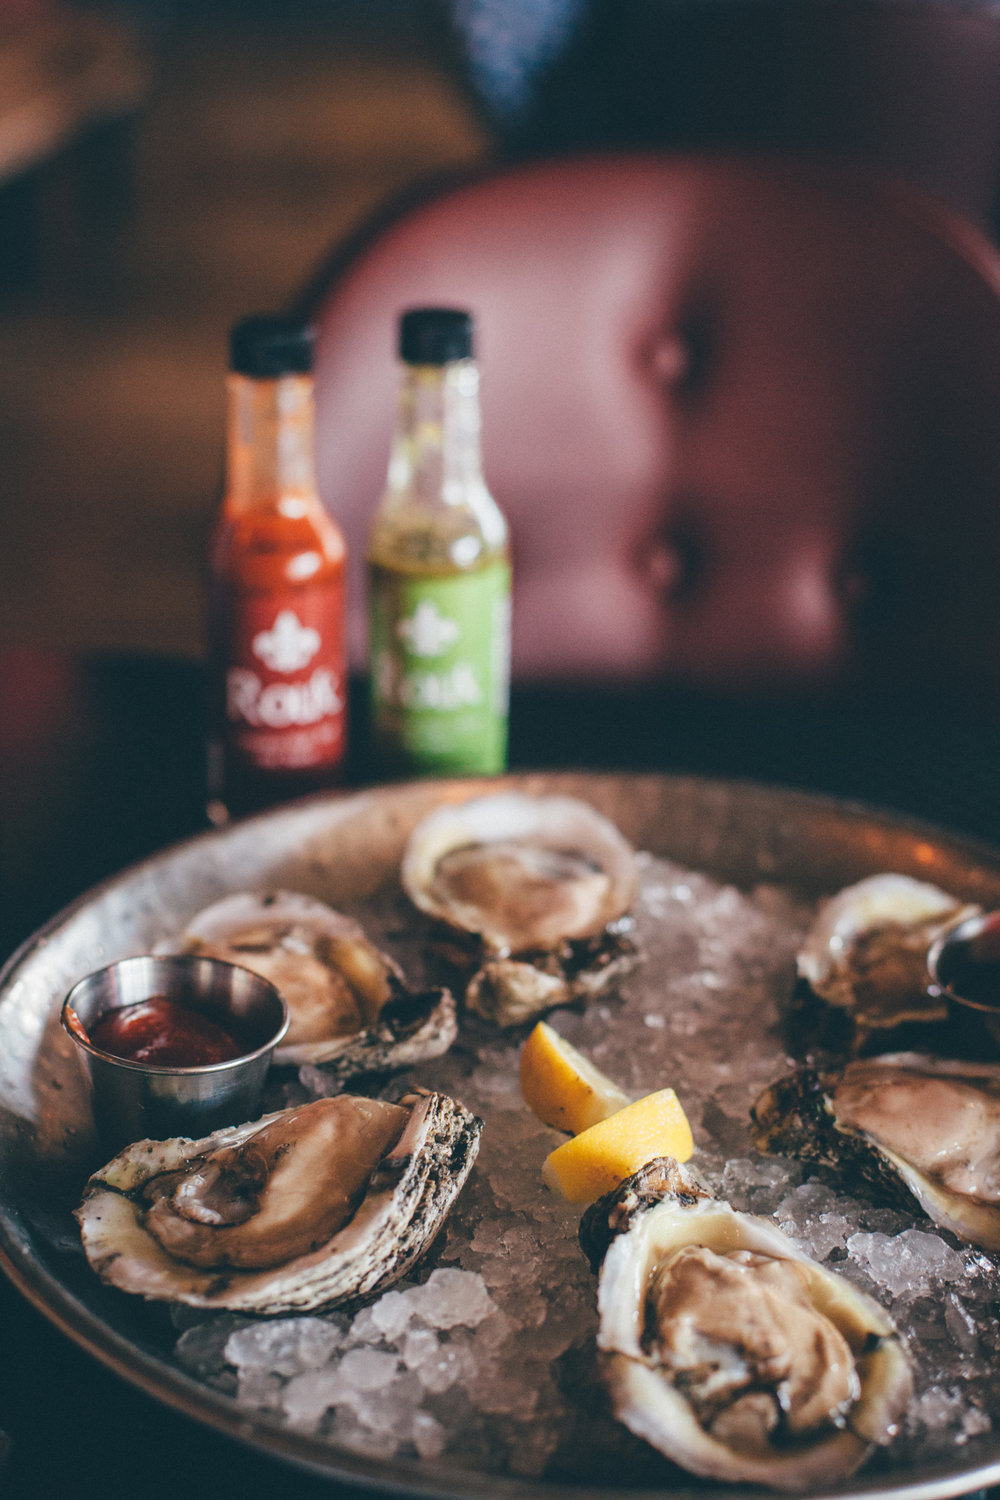 Oysters on the half shell, served with Cajun cocktail sauce and Creole mignonette.